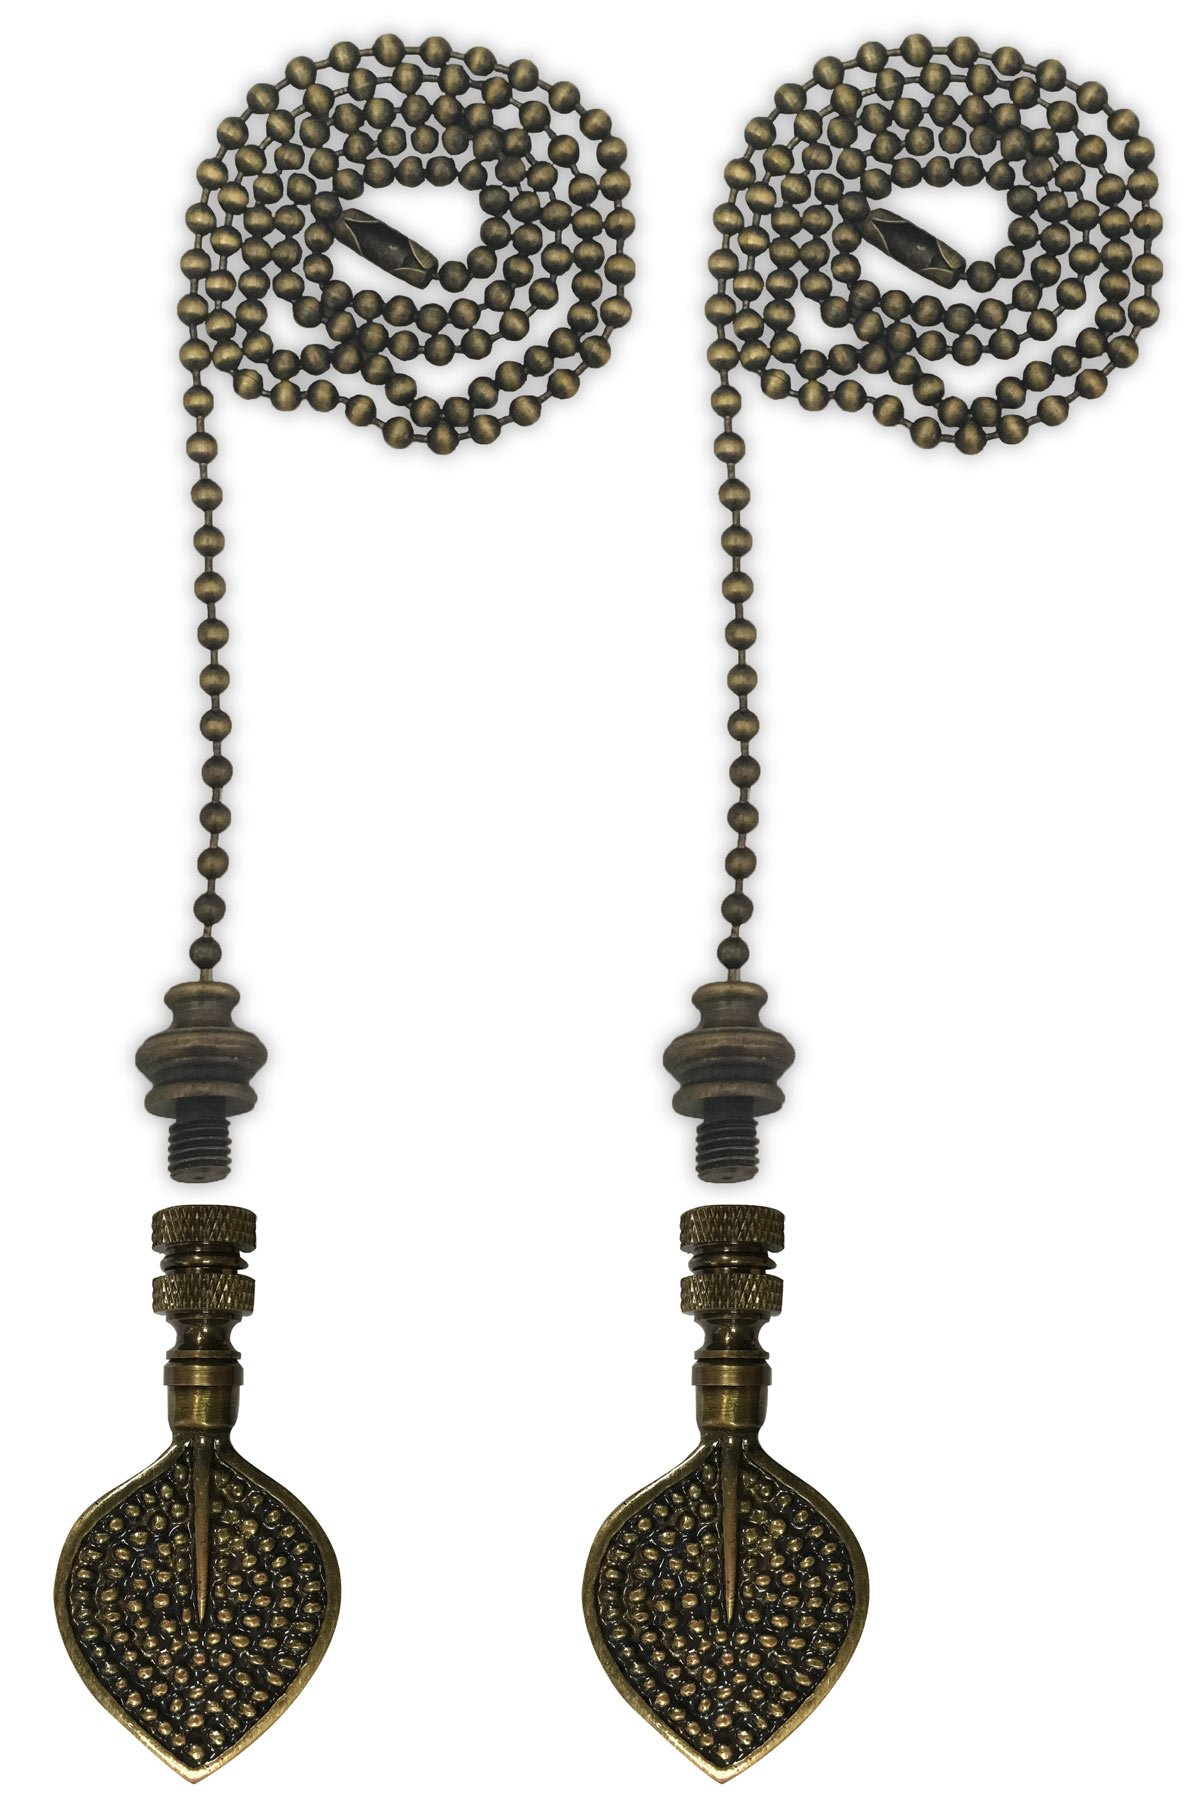 Royal Designs Fan Pull Chain with Birch Leaf Finial – Antique Brass – Set of 2 by Royal Designs, Inc